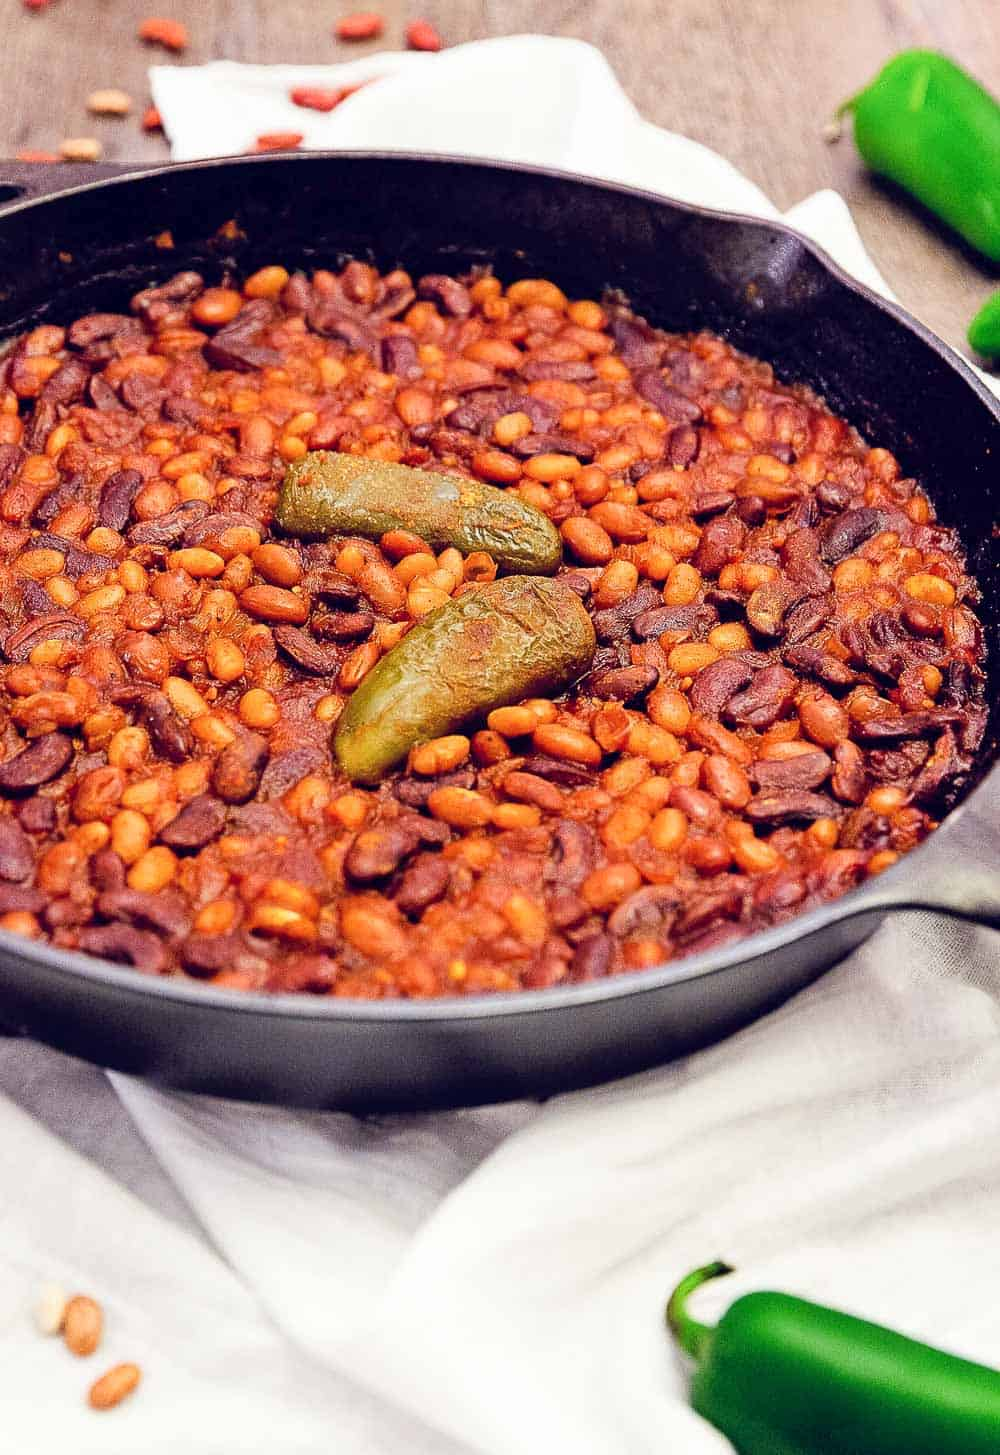 bbq baked beans, whole food plant based, side, beans, bbq, baked beans, gluten free, oil free, refined sugar free, healthy, vegan, vegetarian